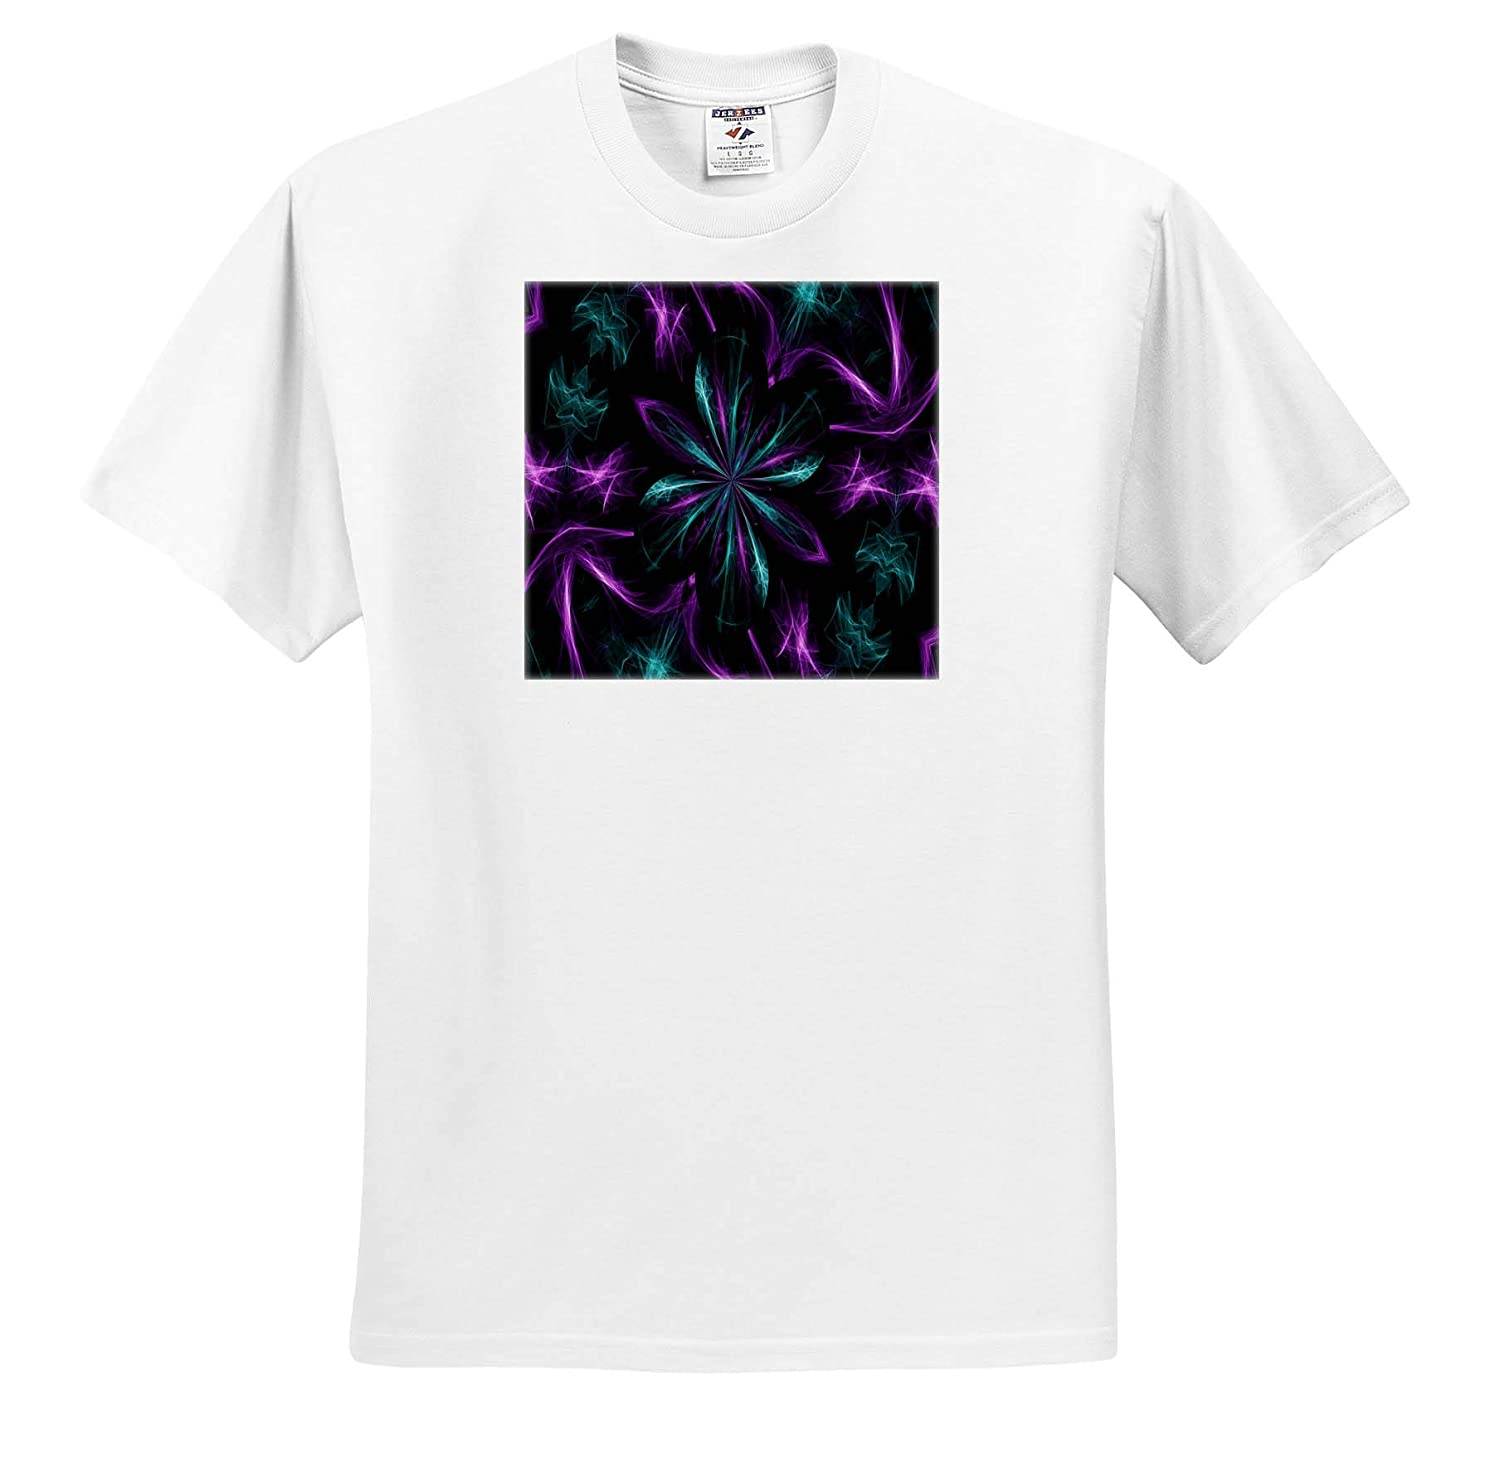 ts/_314281 Design 3dRose Dreamscapes by Leslie Purple and Teal Dreamscapes Design 1 Adult T-Shirt XL